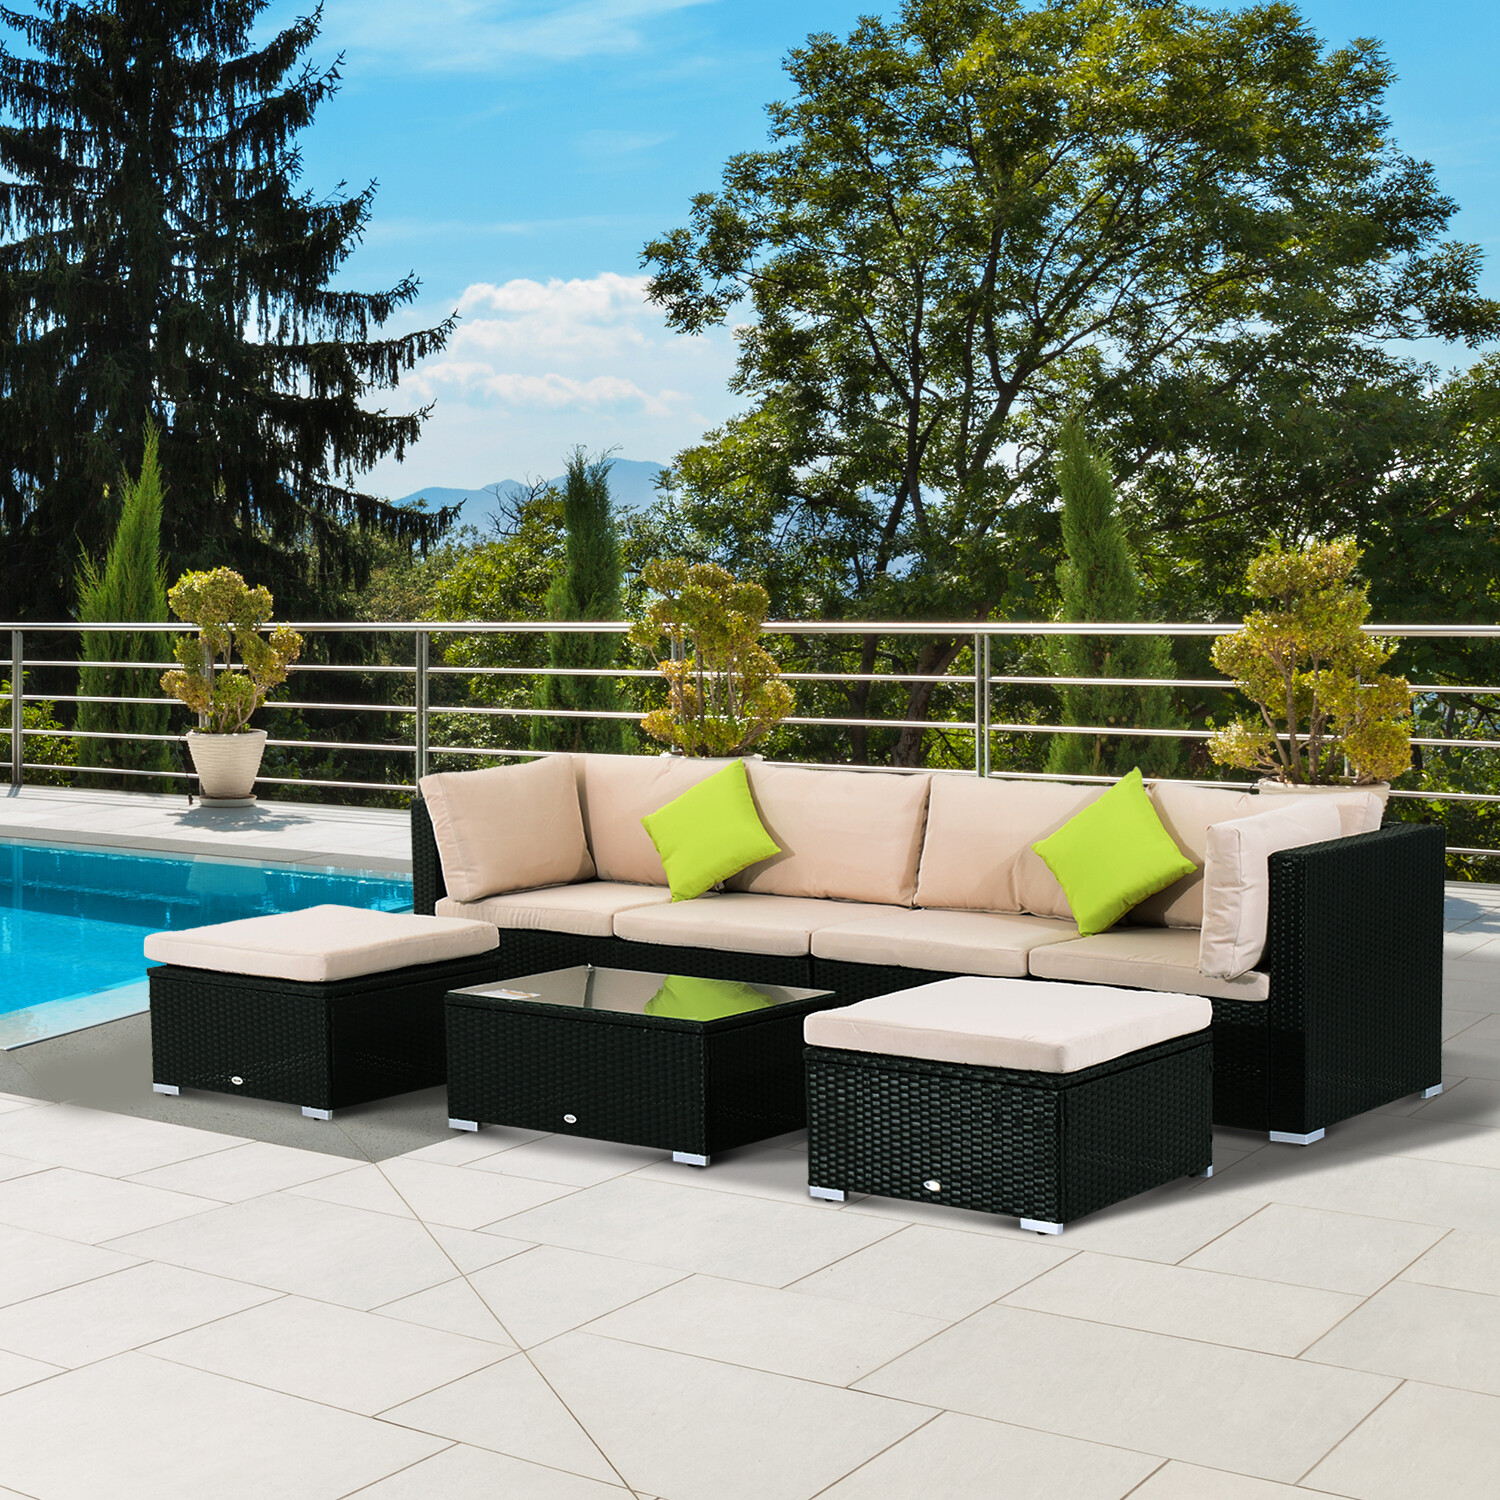 Outsunny®Wicker Polyrattan Gartenmöbel Lounge Set 21tlg.